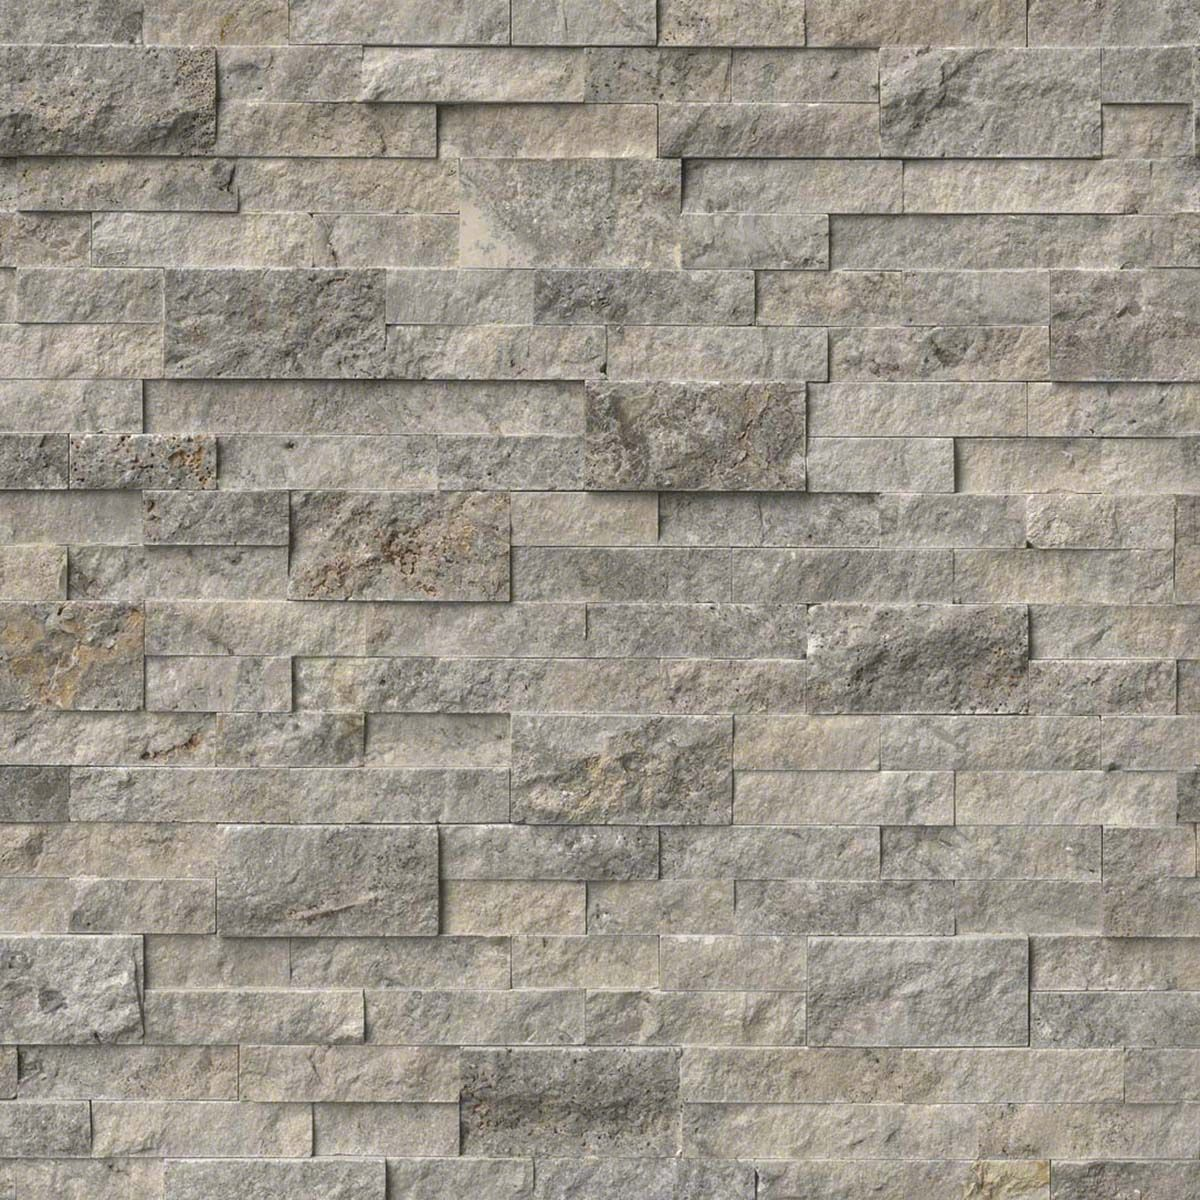 from msi stone have sample primarily gray with some